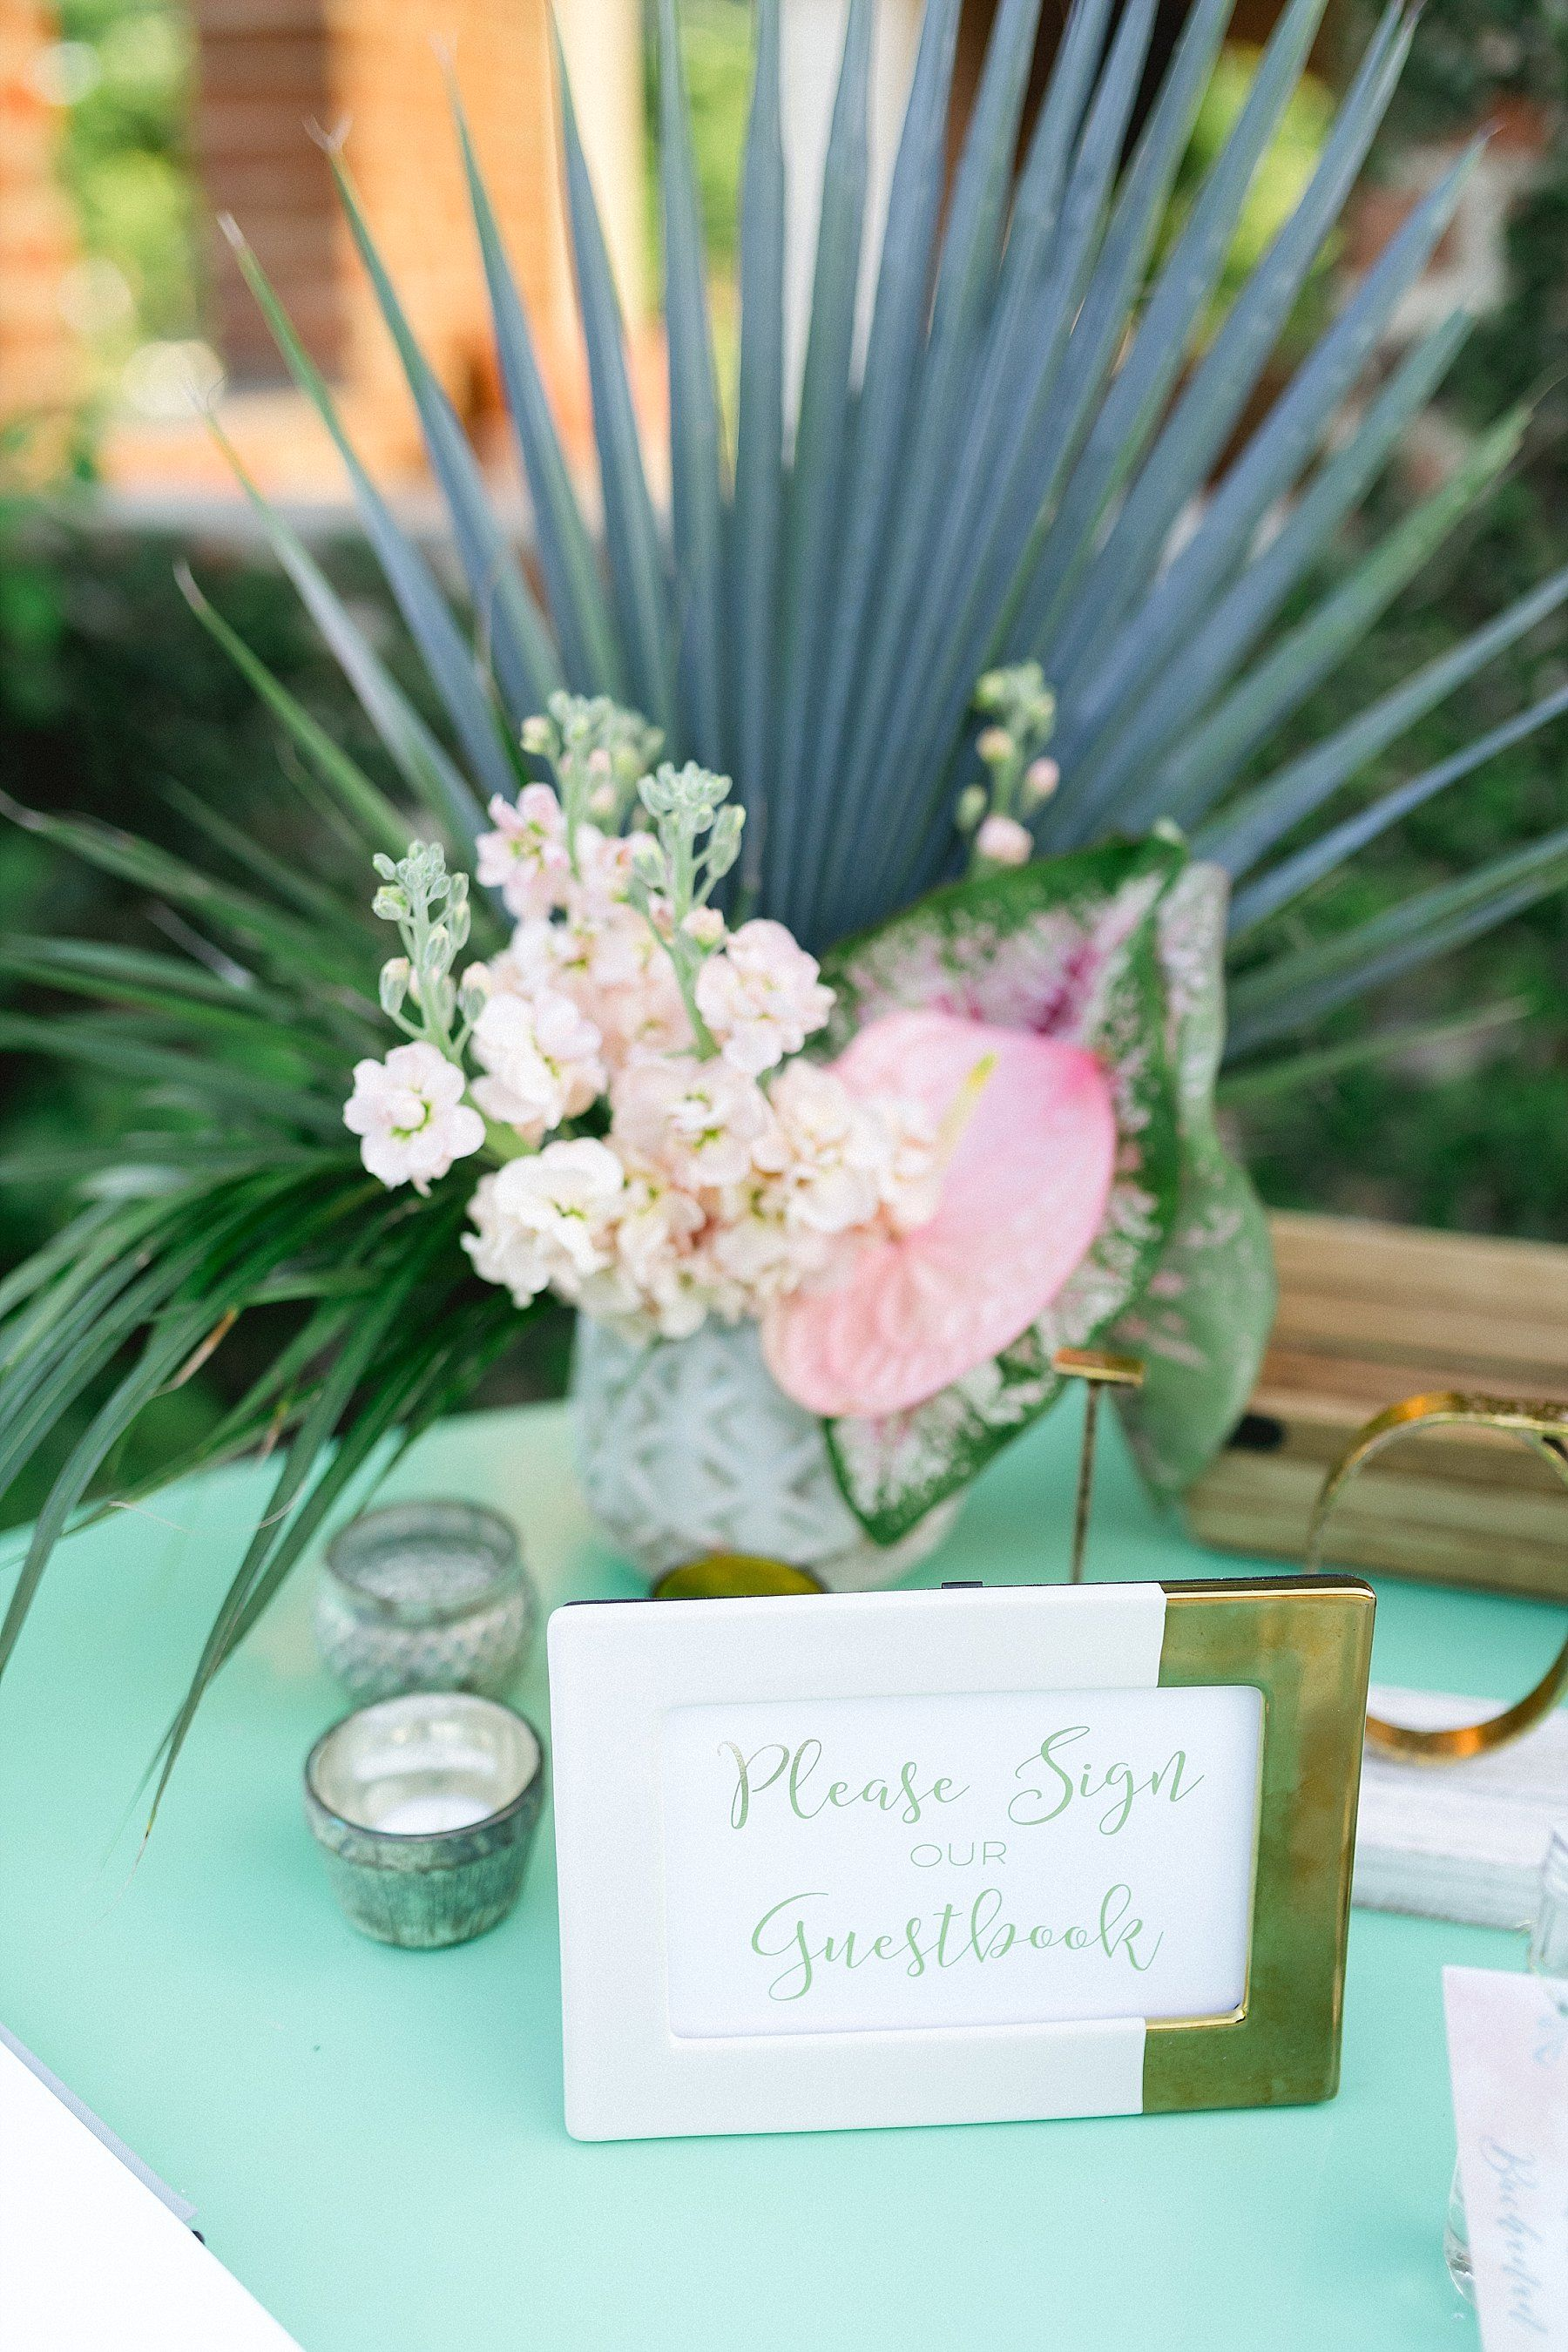 Guest signing book table with a floral arrangement. The Wedding took place at Flora Farms in Los Cabos, Mexico. Wedding Planning by Cabo Wedding Services. Photography by Sara Richardson